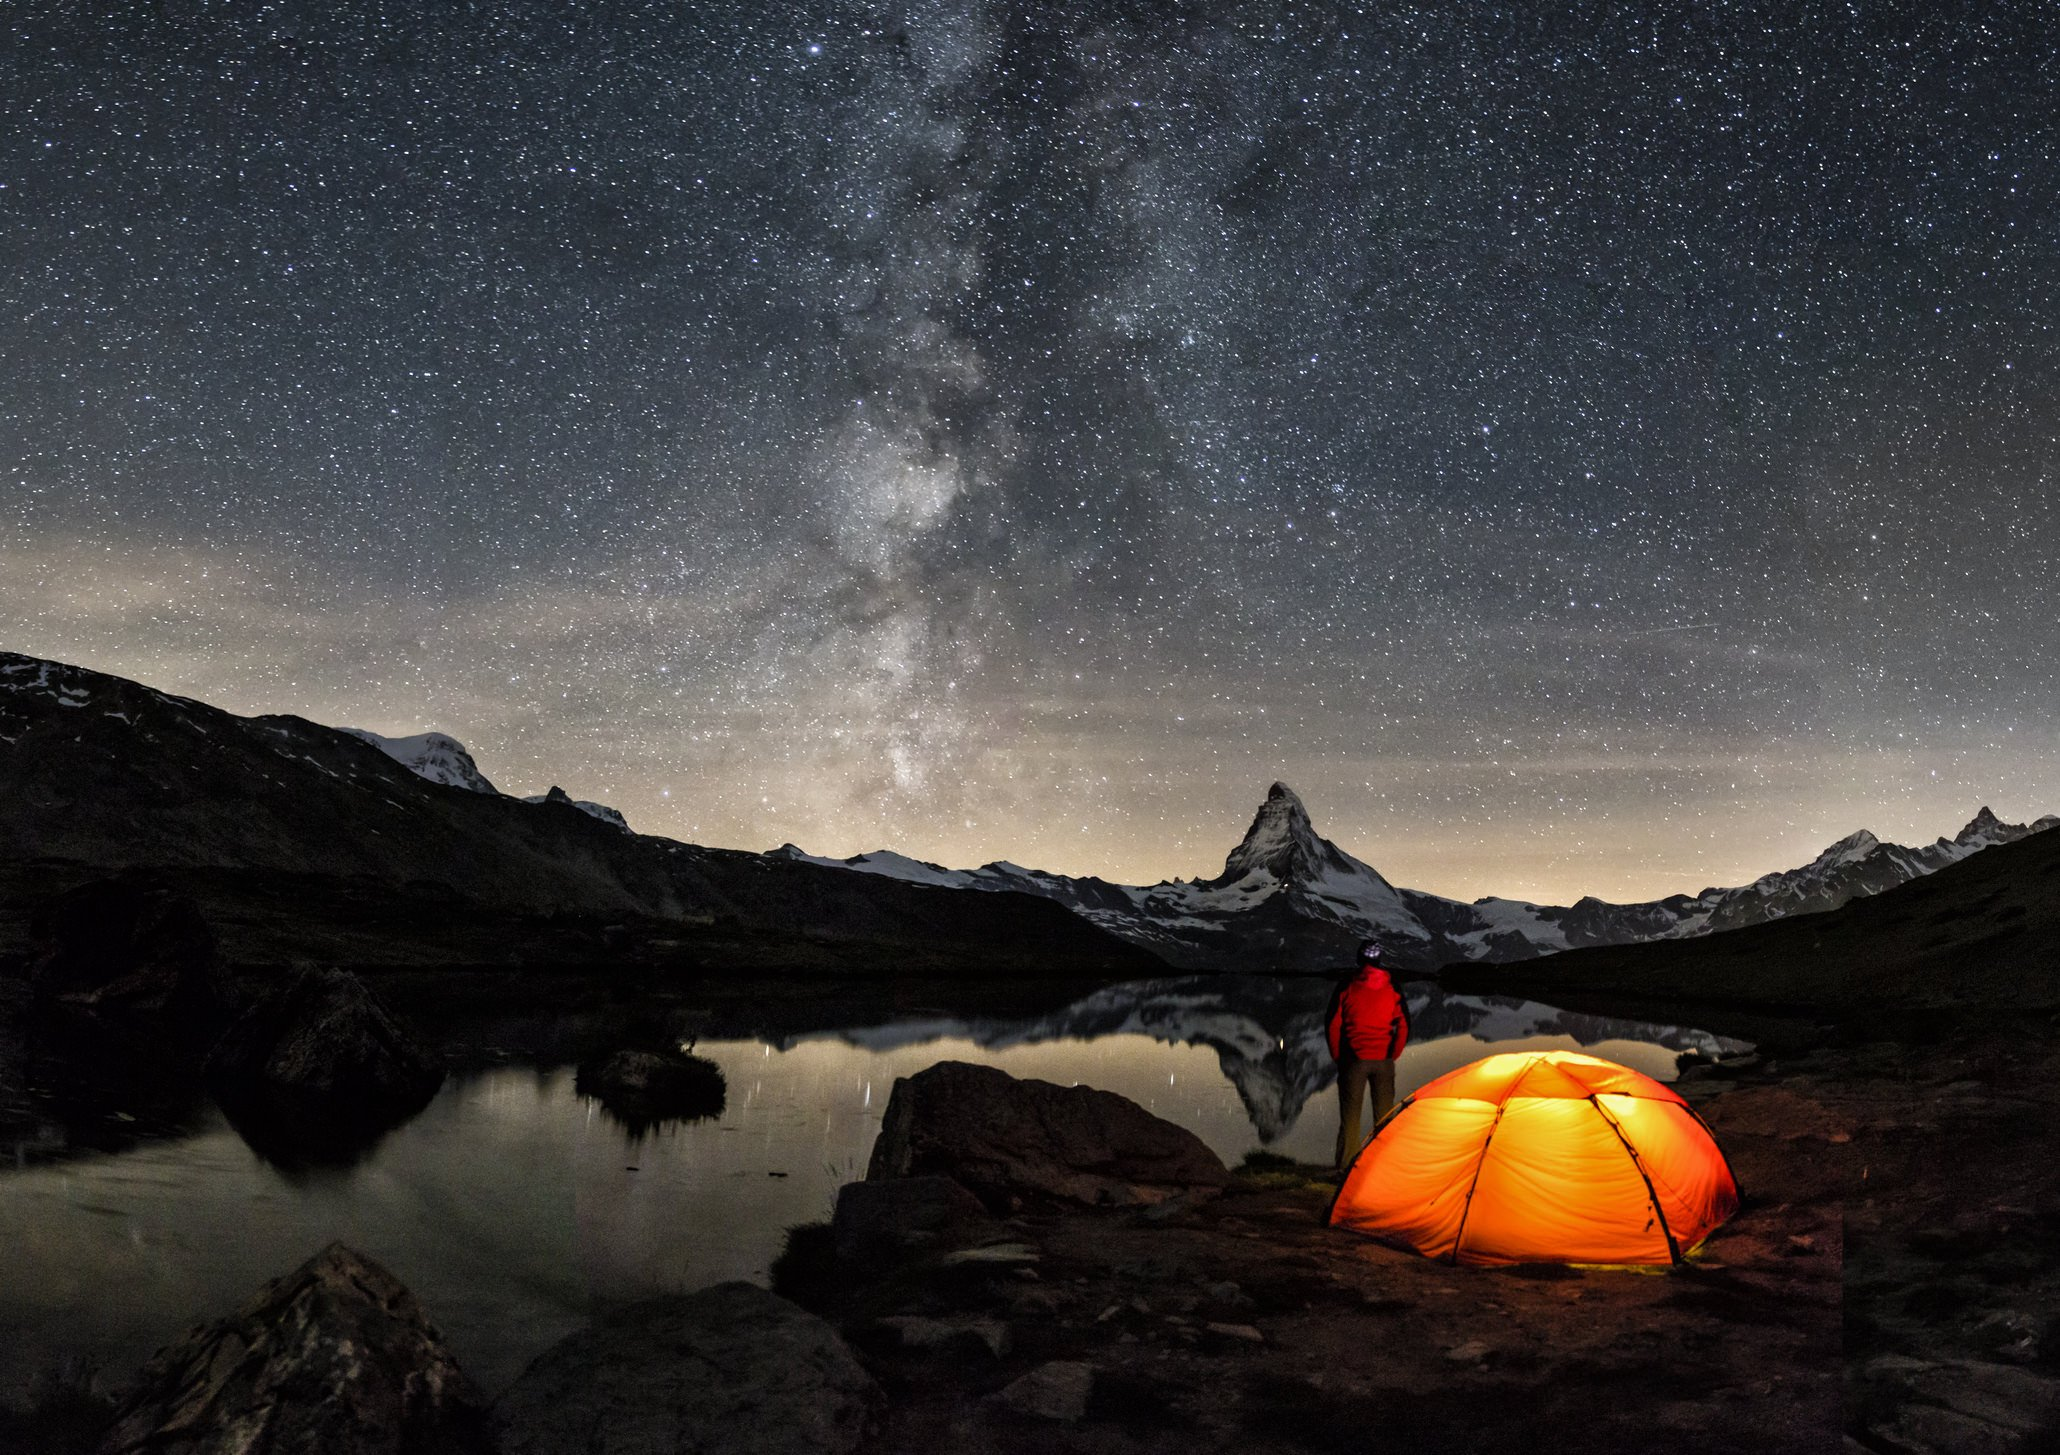 9 Things You Can Do to Take Better Photos of the Milky Way